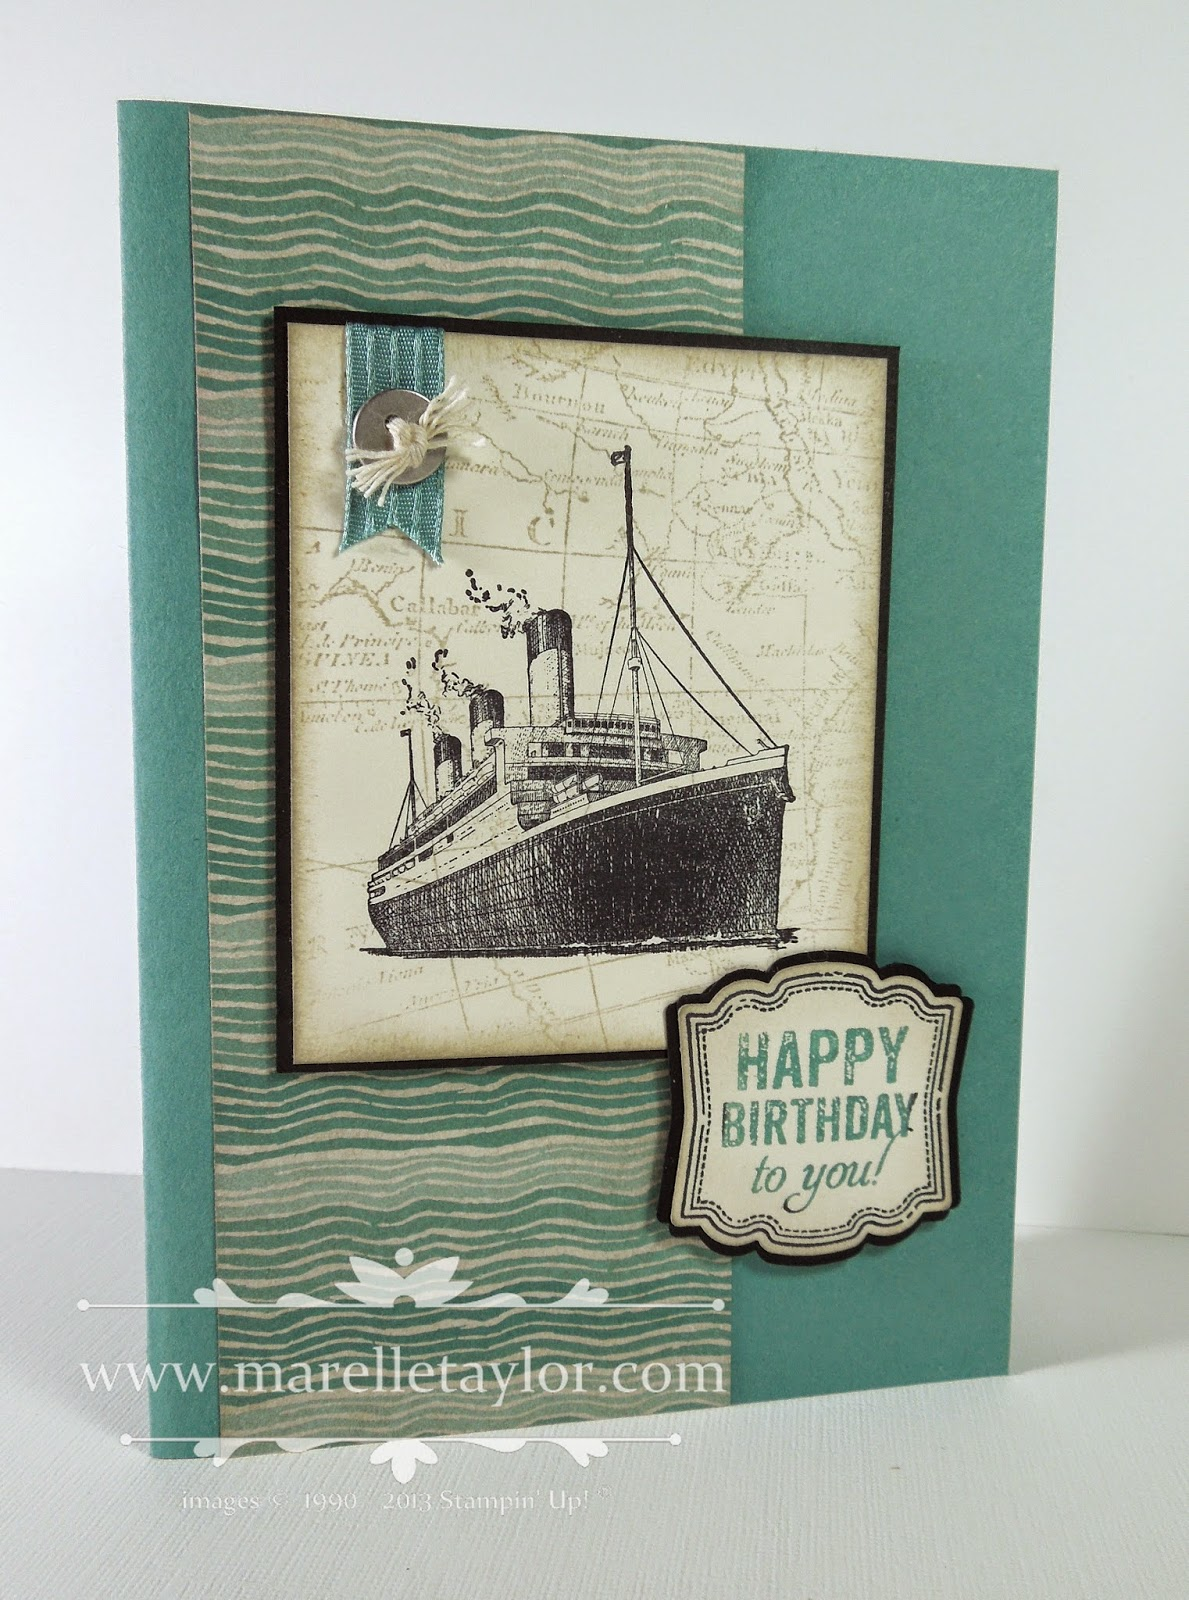 Marelle taylor stampin up demonstrator sydney australia traveler lost lagoon is a great colour for masculine cards and the traveler stamp set is my go to masculine stamp set world map is such a natural partner for this gumiabroncs Images